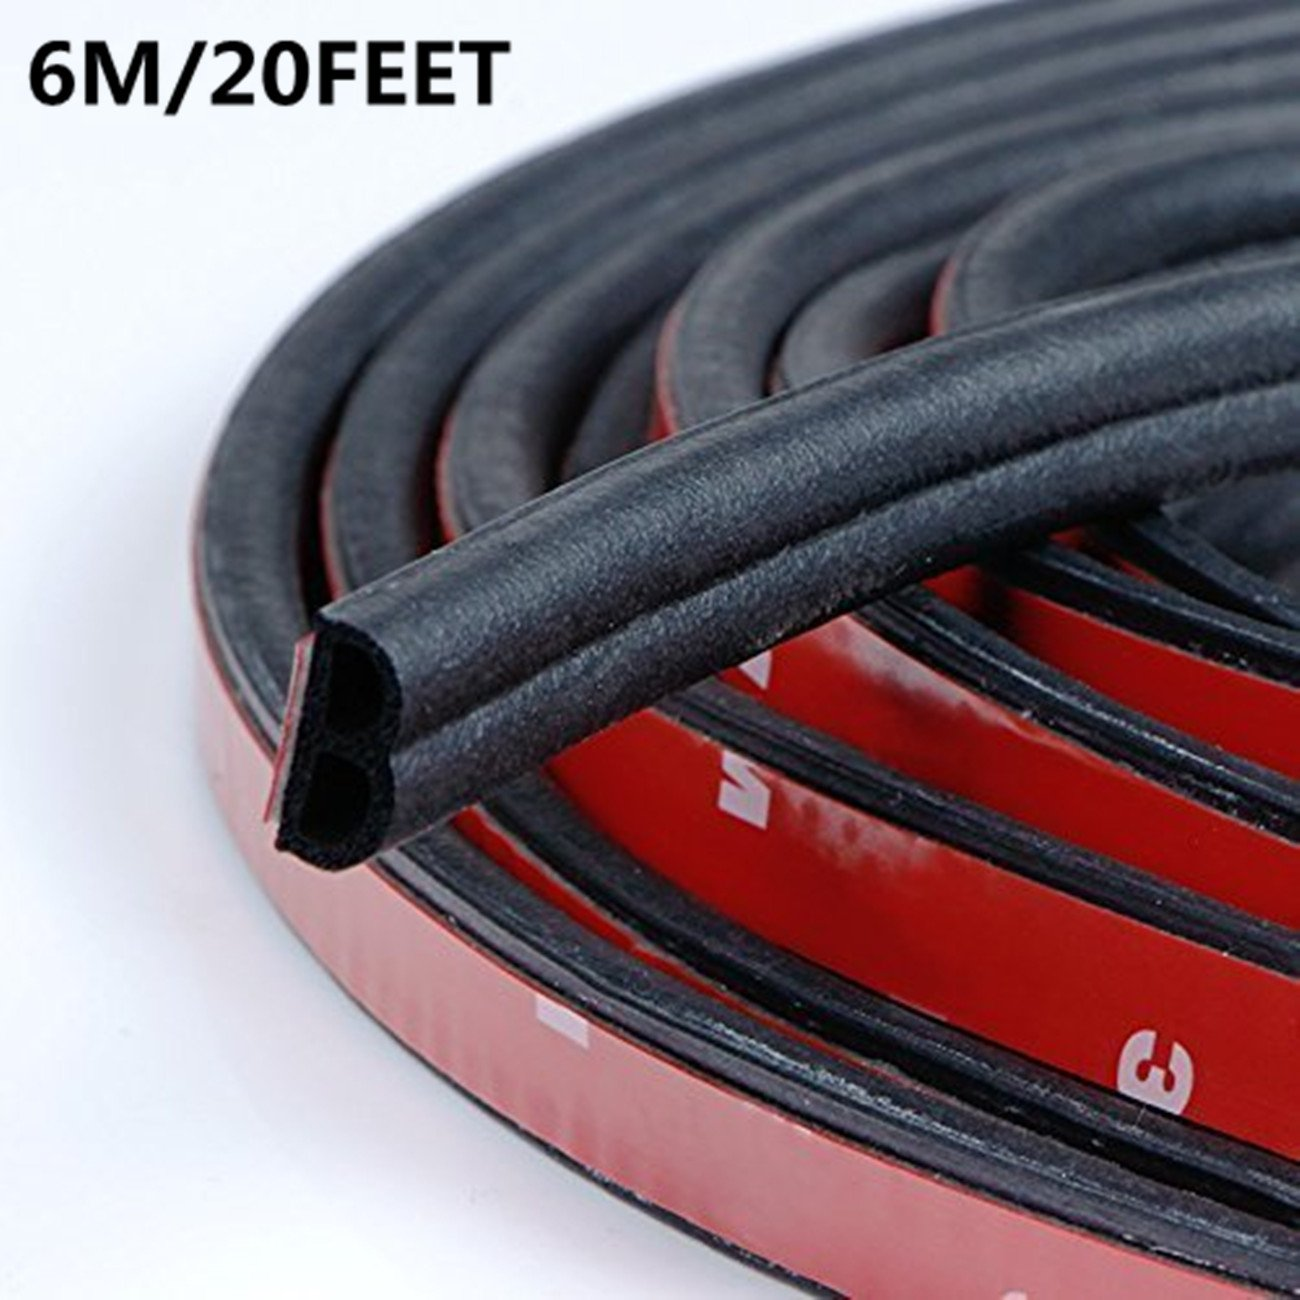 Self Adhesive Automotive Rubber Seal Strip Weatherstrip Car Weather Stripping for Car Window Door Engine Cover Noise Insulation(B-Shape Black total length 6M/20 Feet )